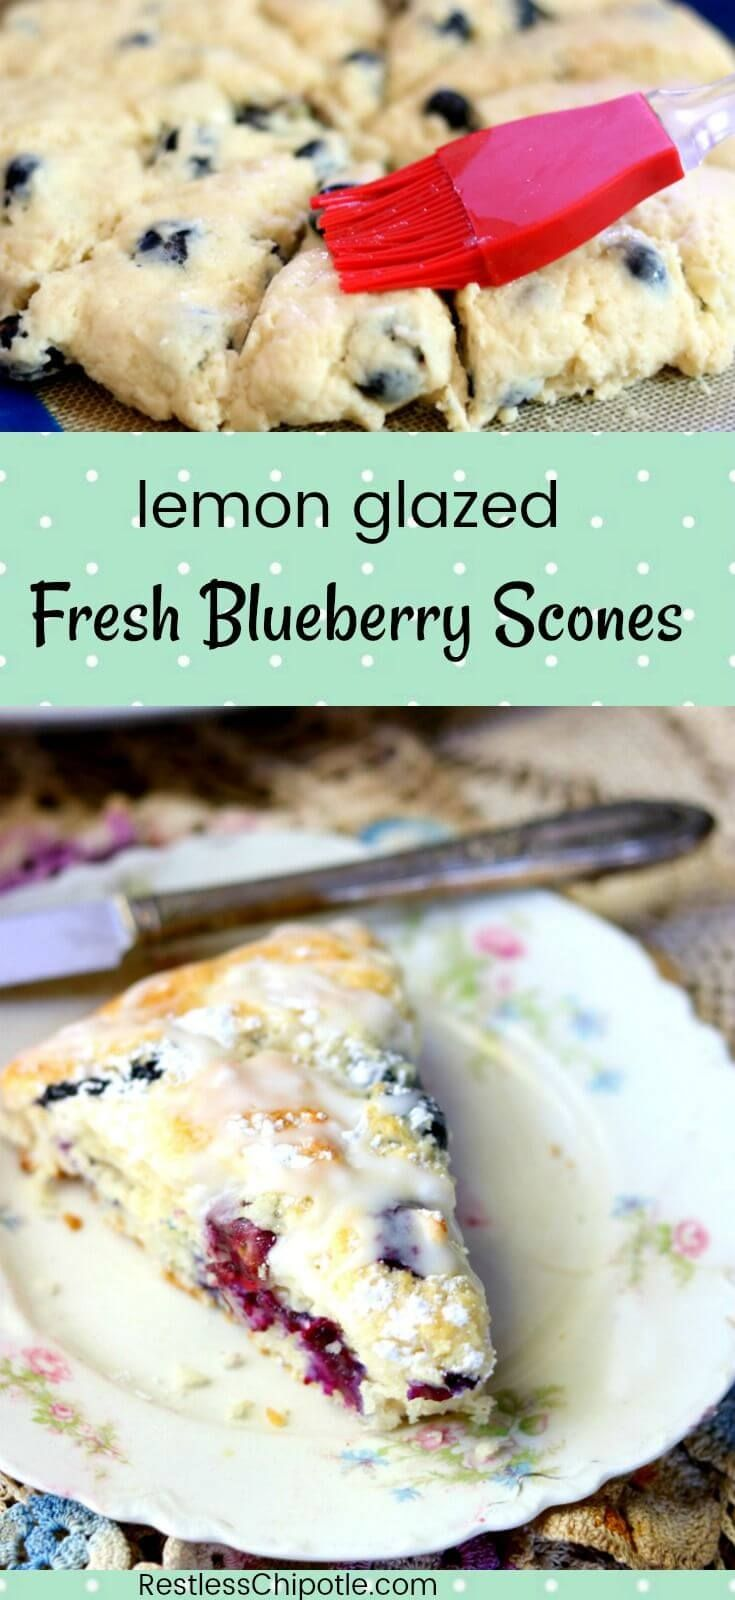 These easy lemon blueberry scones with their tangy lemon glaze taste just like a bite of summer - this recipe is a family favorite. Lots of plump, ripe blueberries are enveloped in a buttery, flaky dough with just a hint of lemon. Hints for making perfect scones included! from RestlessChipotle.com #BlueberryScones #blueberrysconesrecipe #lemonblueberryscones via @Marye at Restless Chipotle